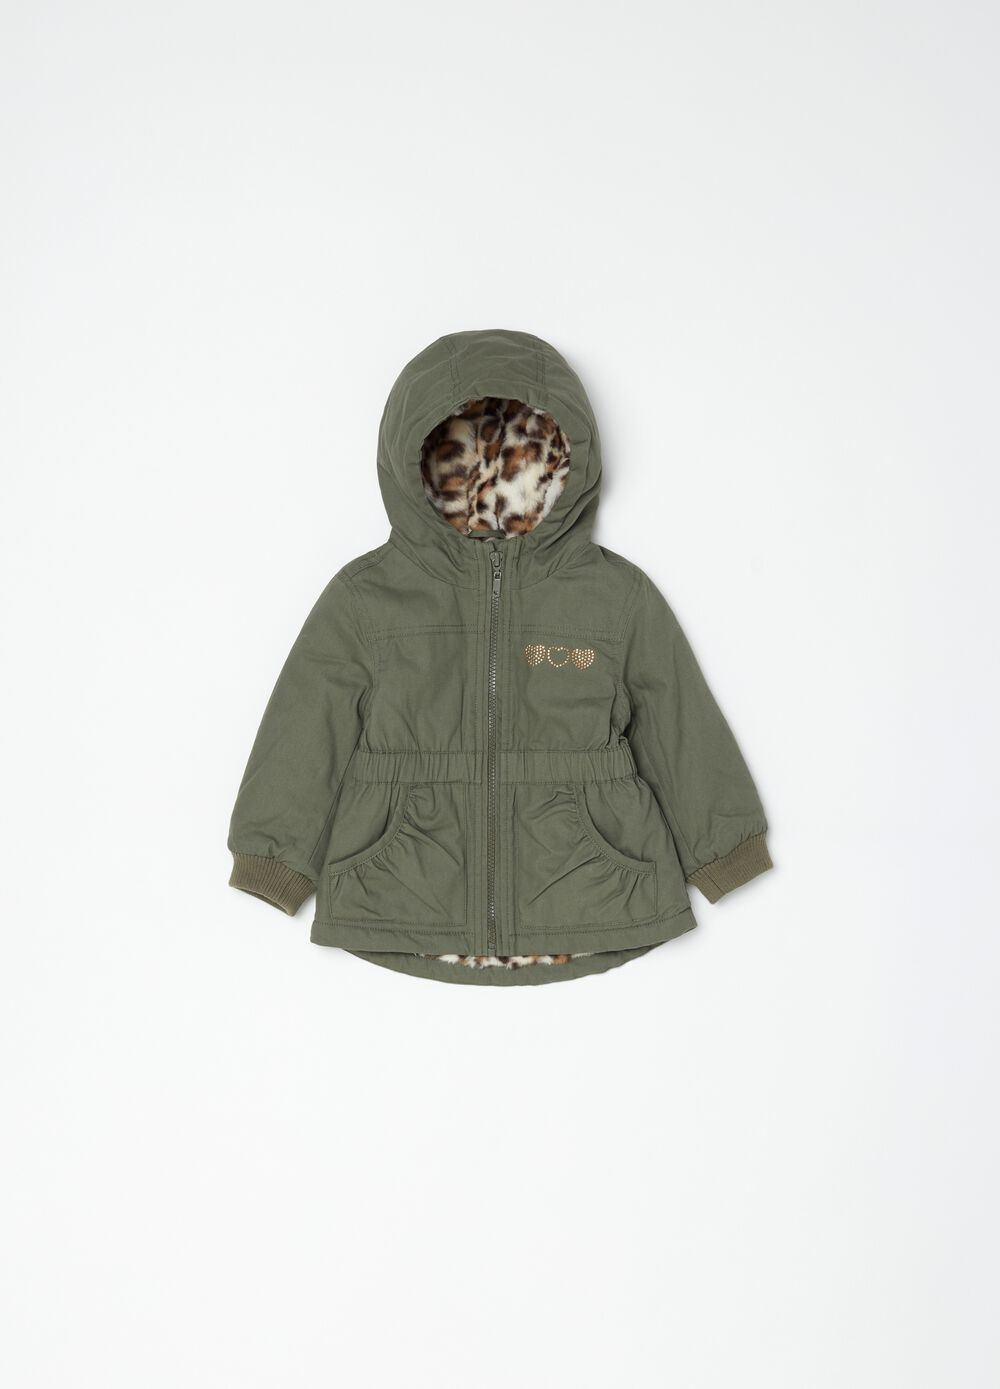 Parka with hearts diamantés and pockets